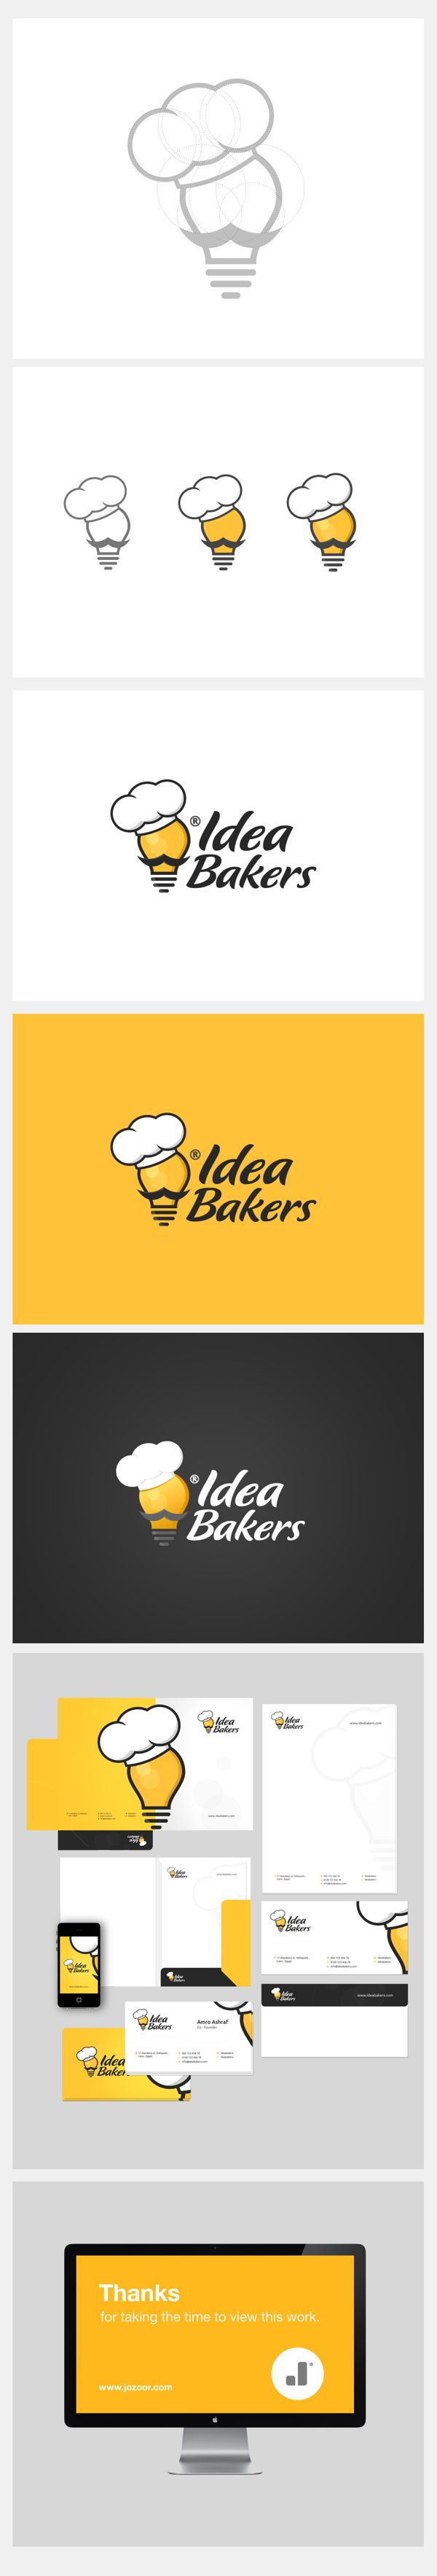 Idea Bakers brand by Jozoor , via Behance